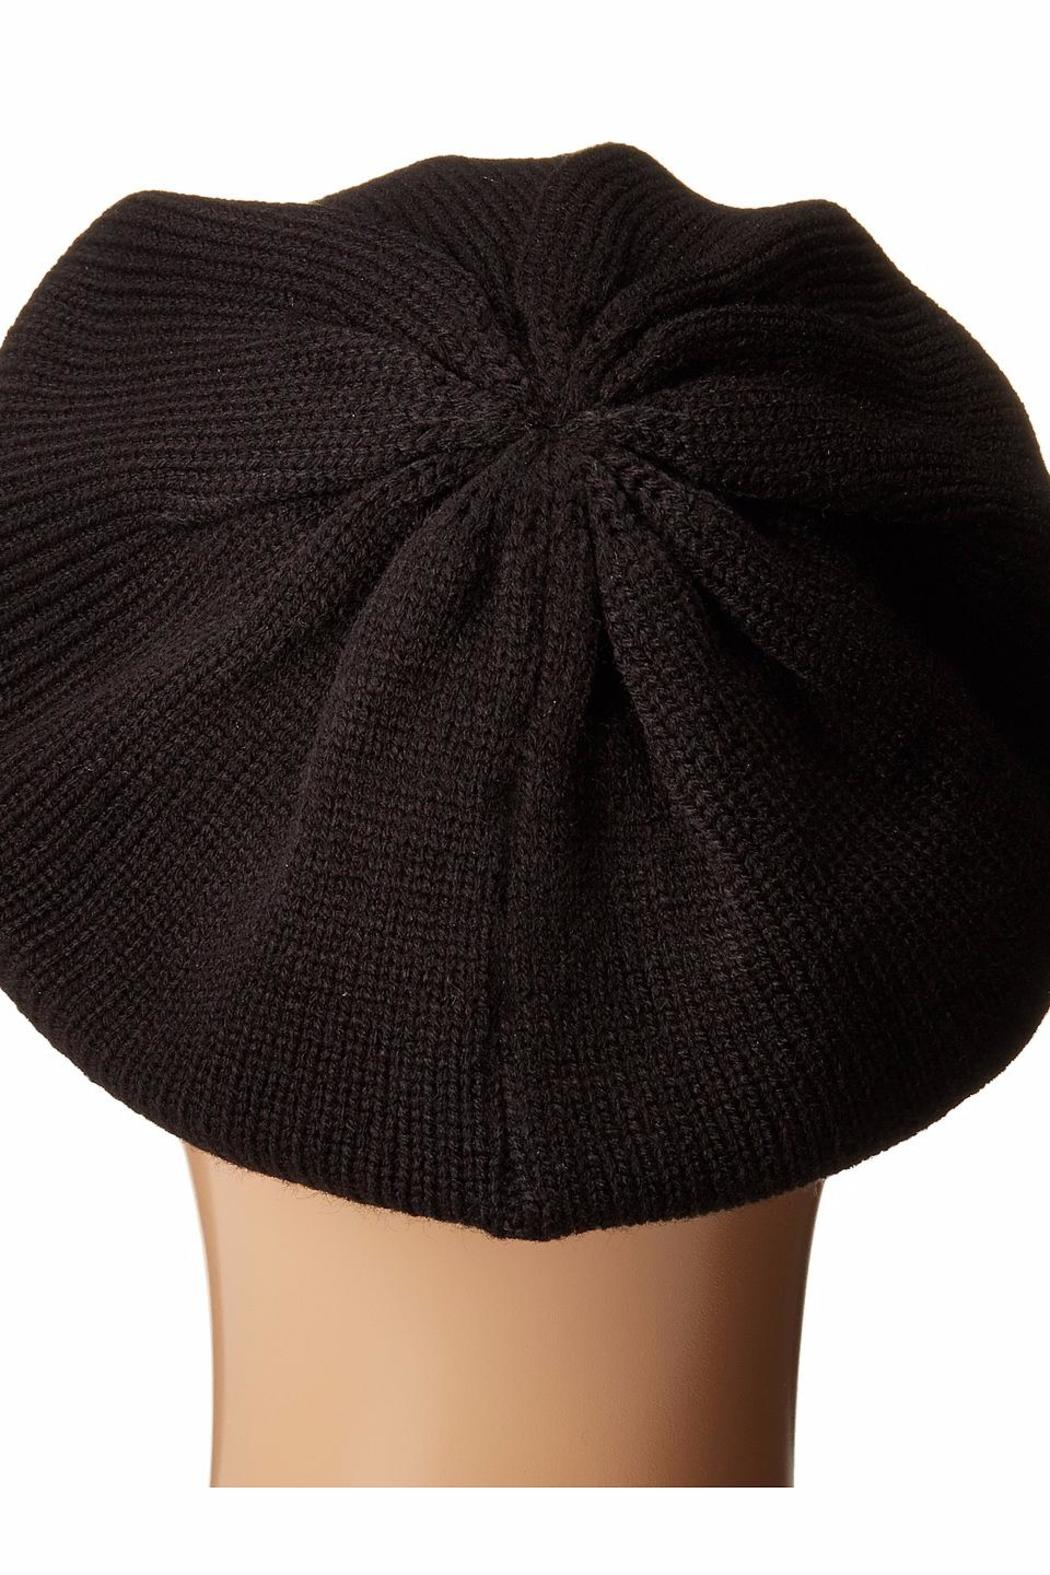 Michael by Michael Kors Logo Studded Beret - Side Cropped Image